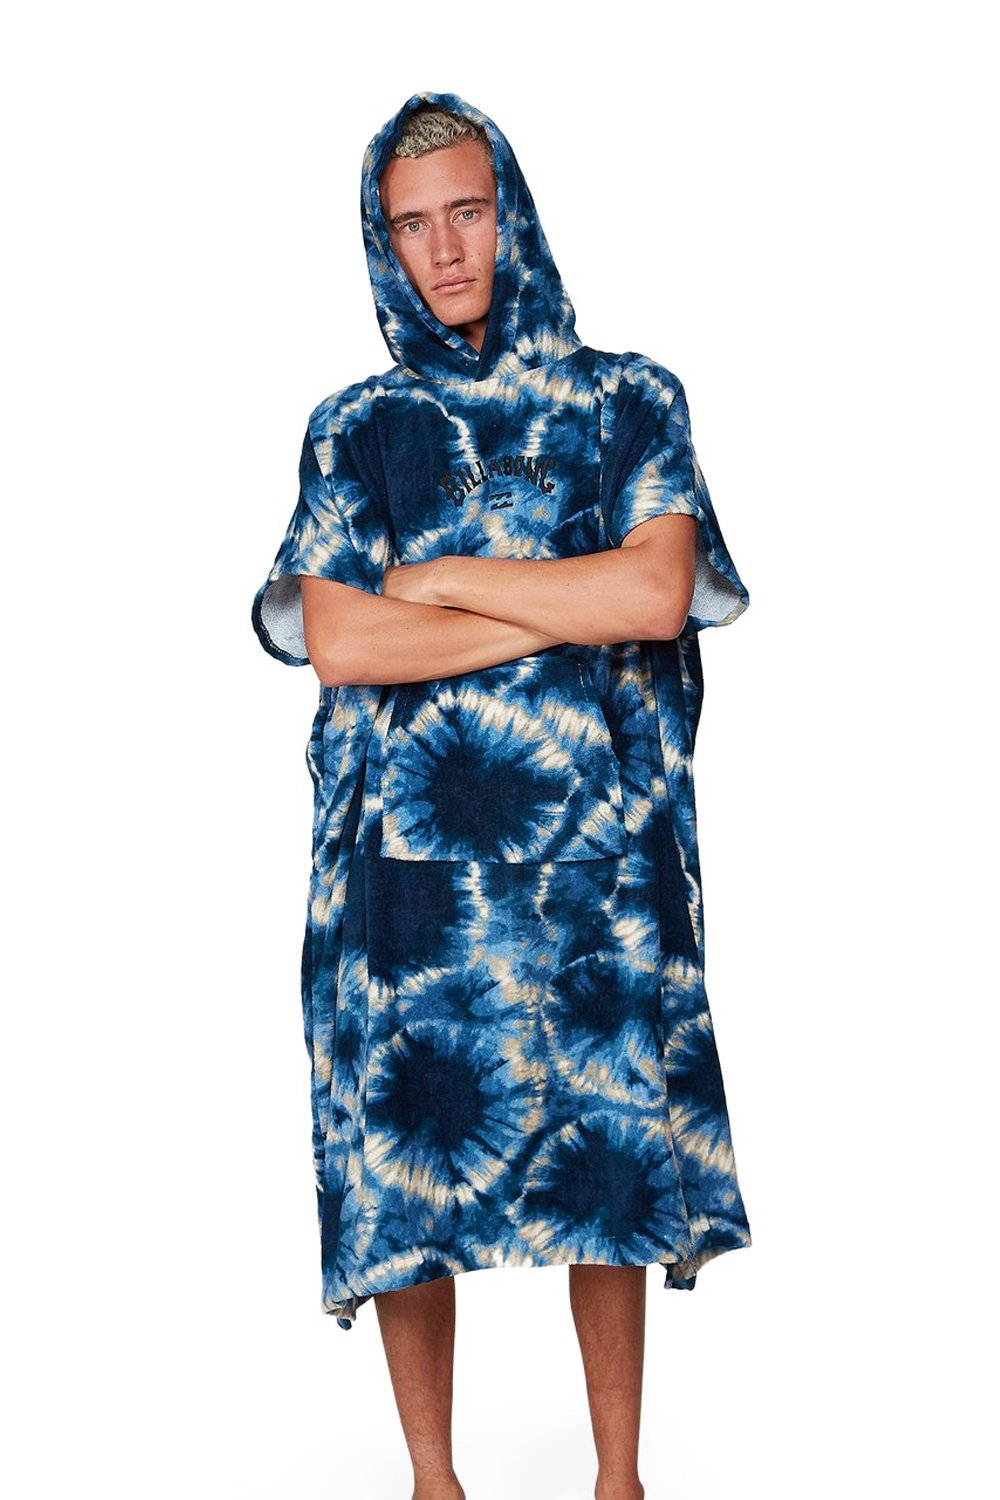 Poncho Billabong Hooded Towel - Blue Tie